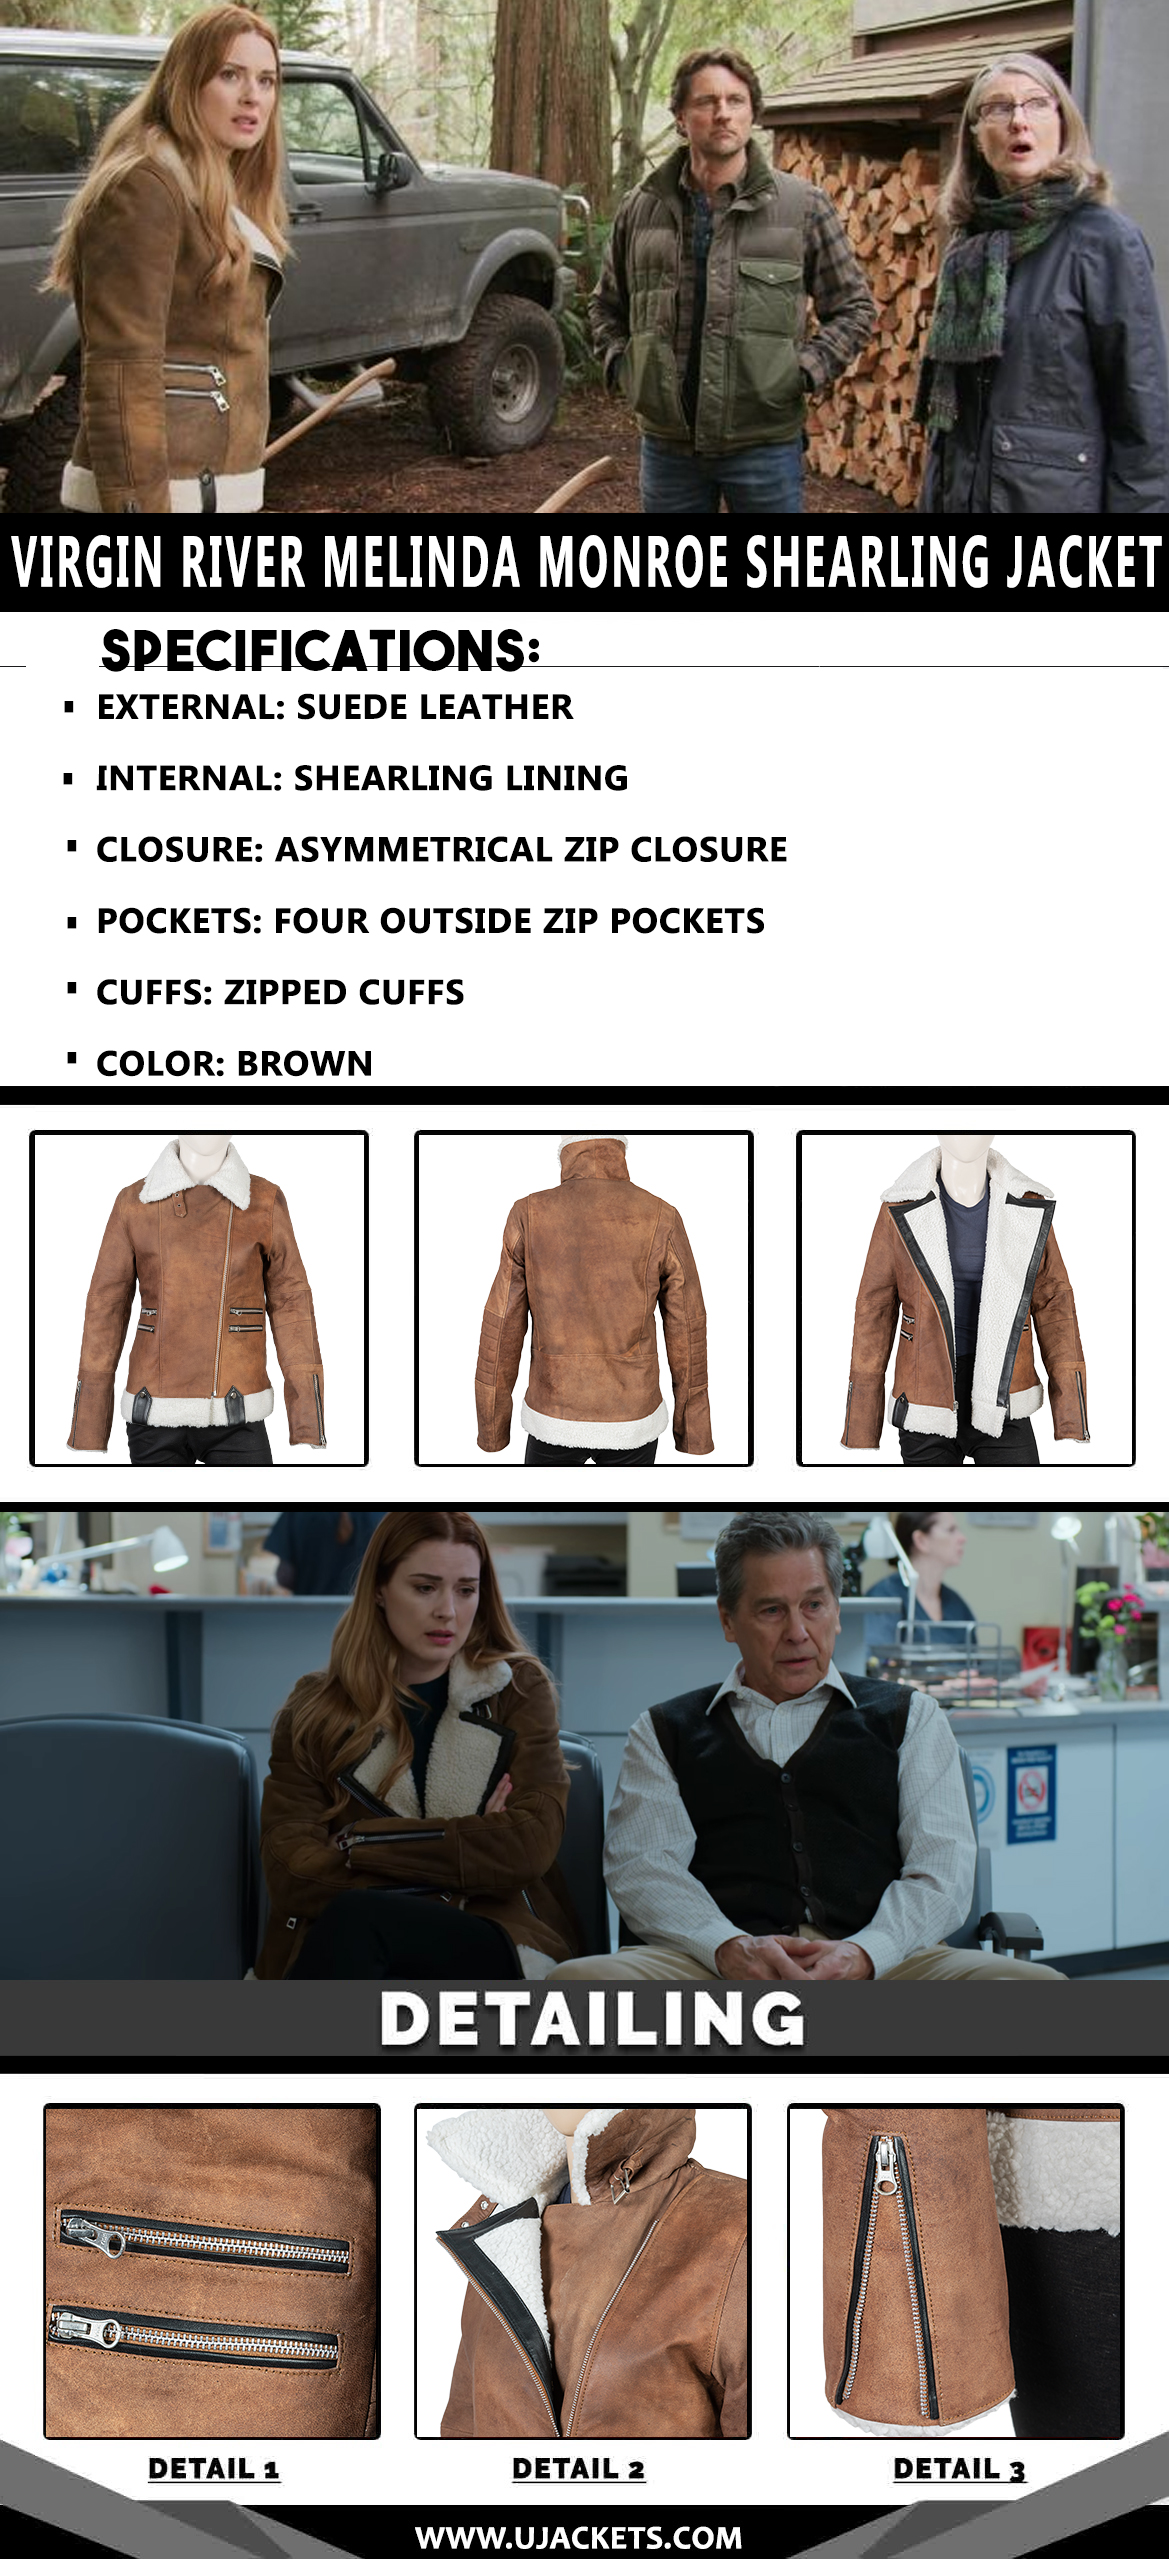 infographic-U-Virgin-River-Melinda-Monroe-Shearling-Jacket (1)